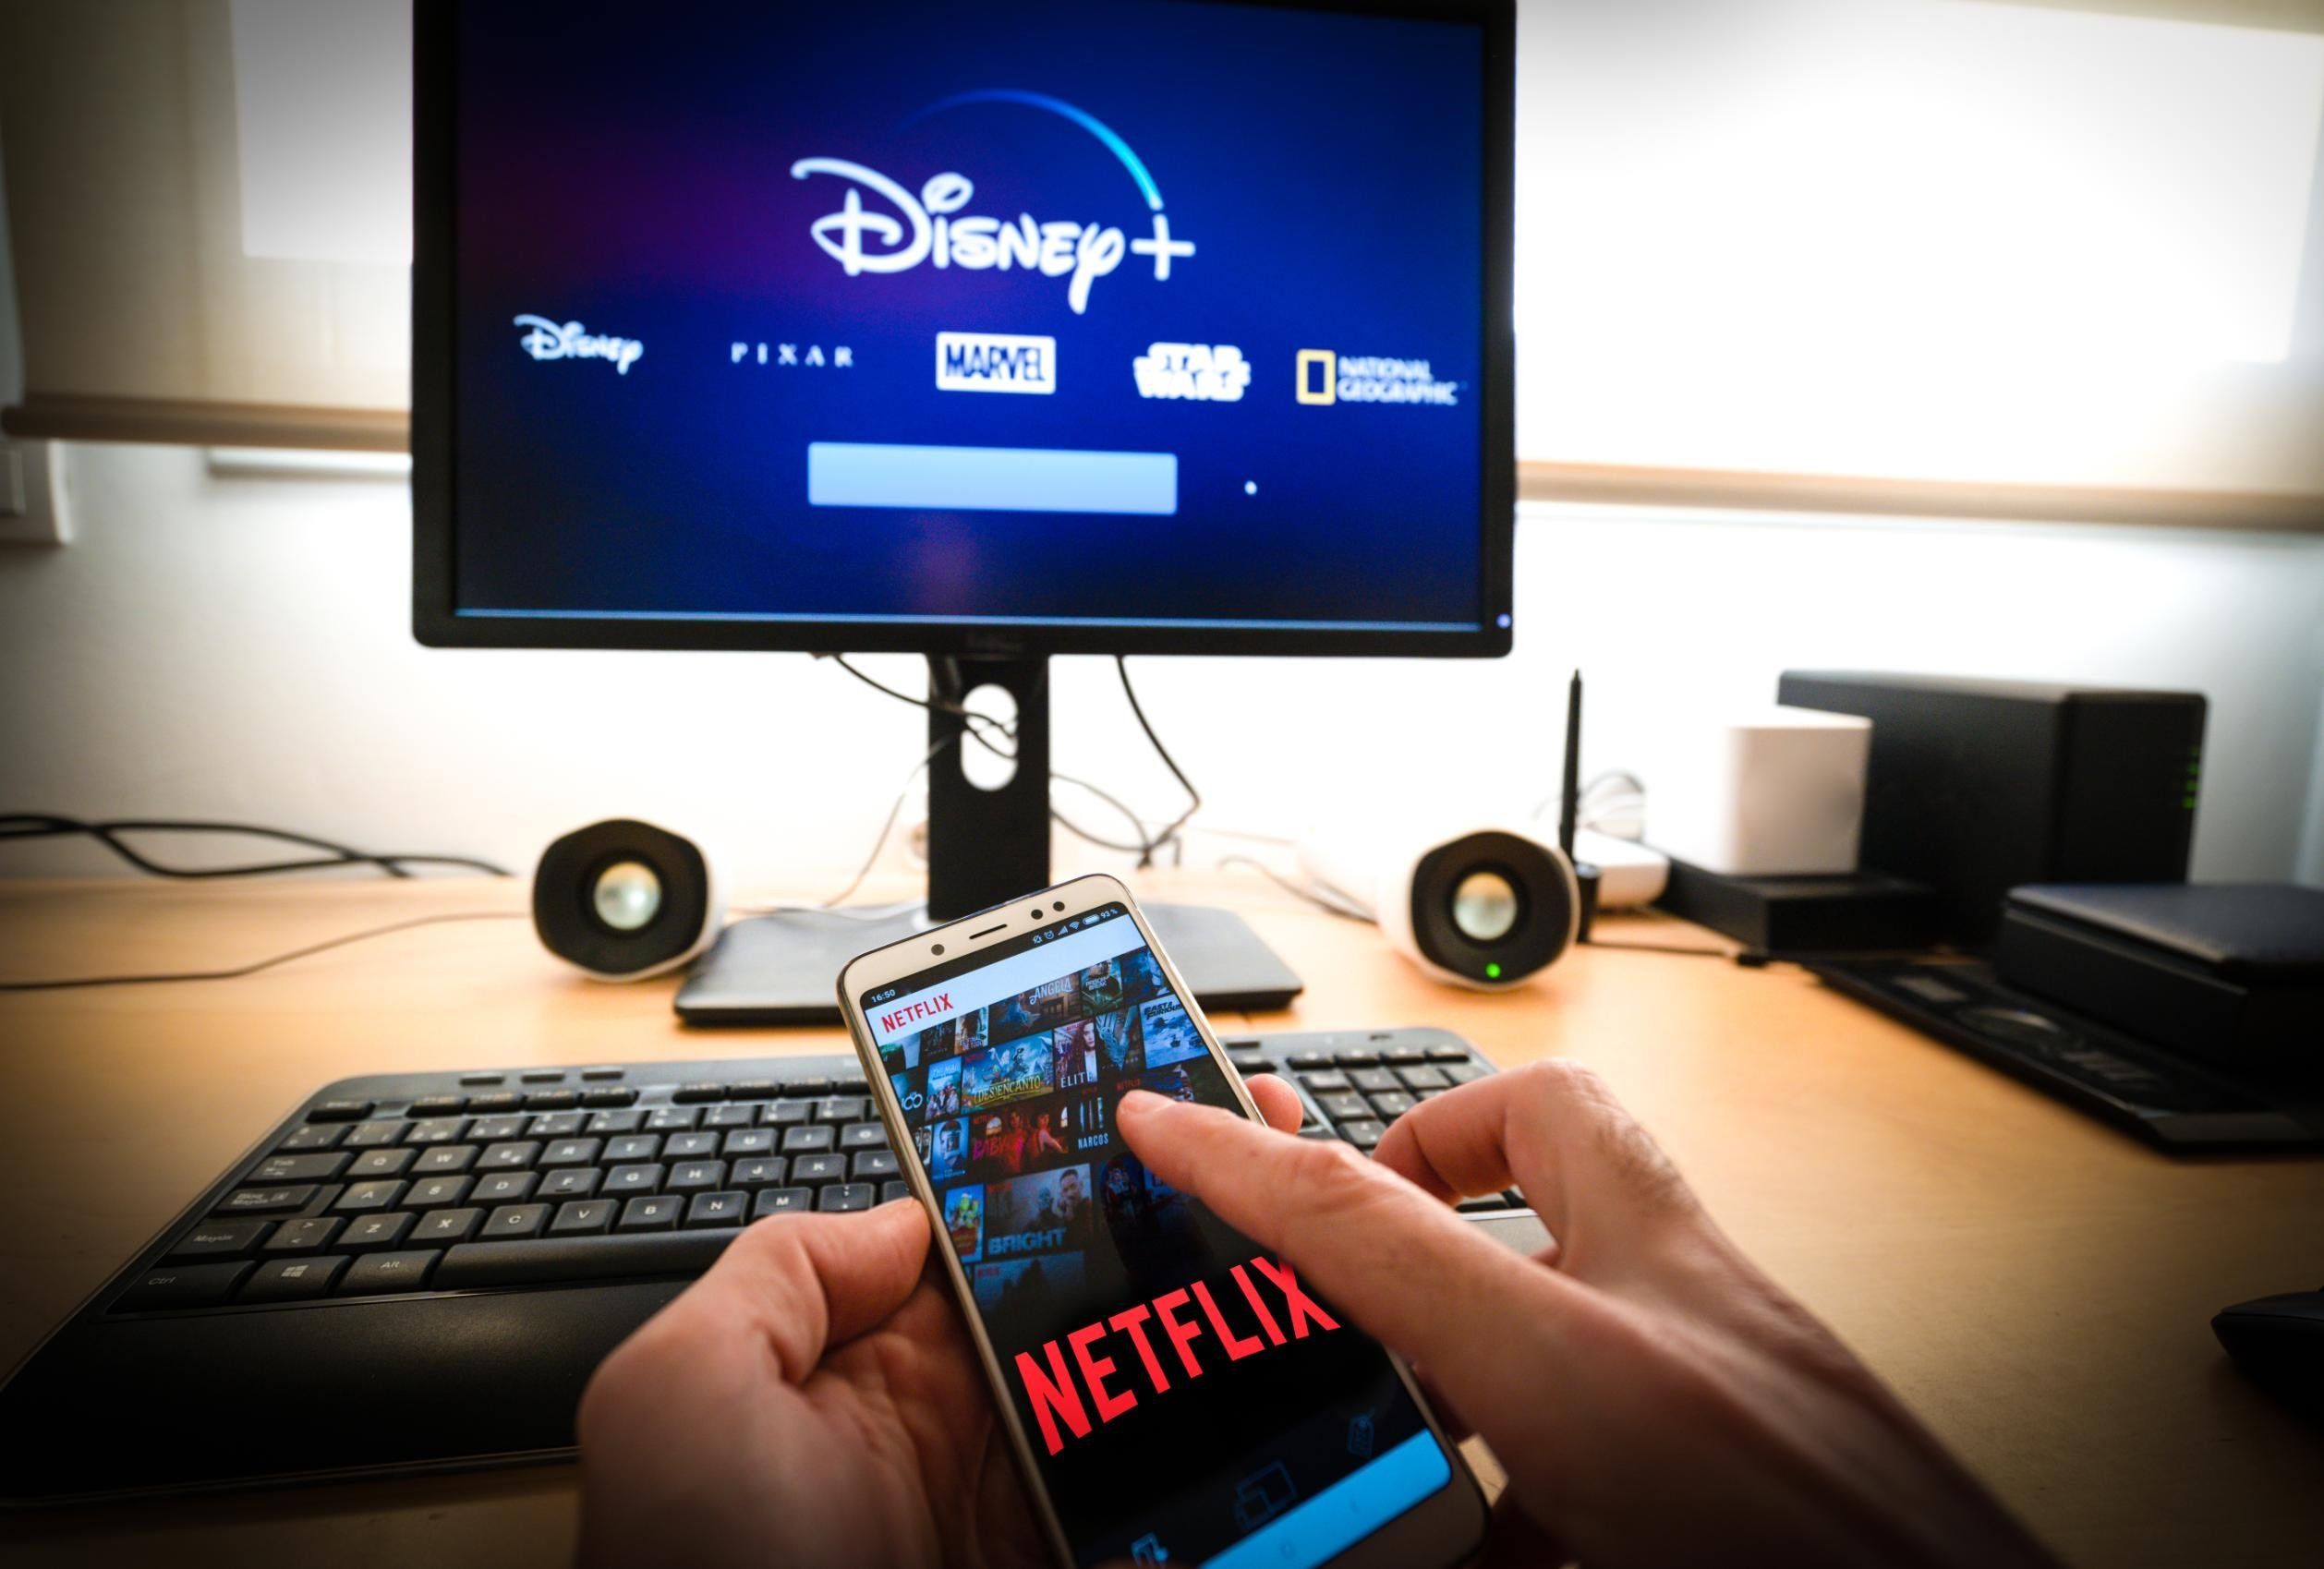 Disney Bans Netflix Ads From Appearing On Their Streaming Service